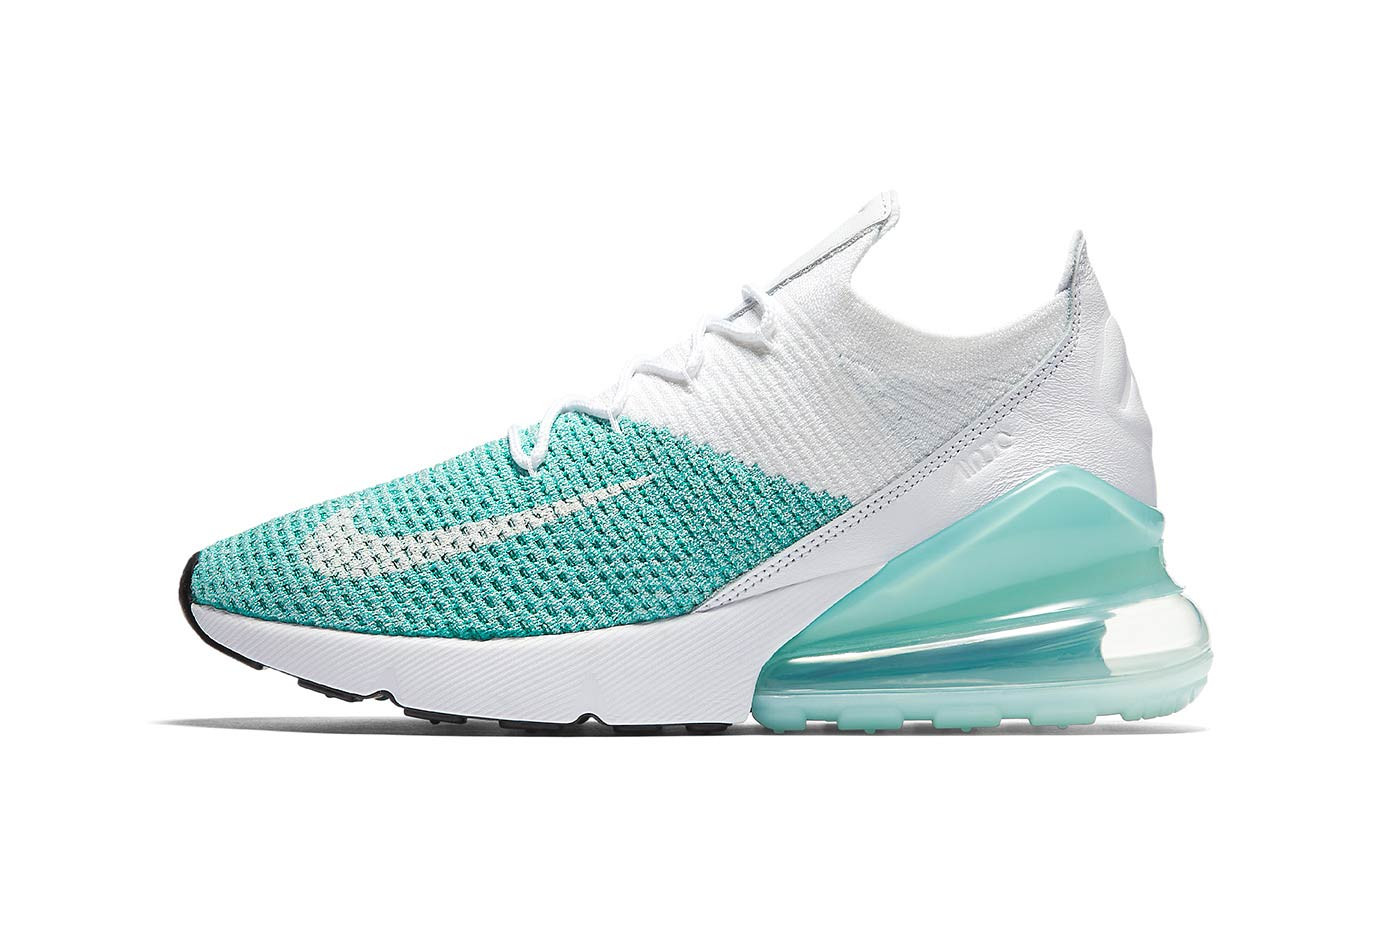 Nike Air Max 270 Flyknit to Release in